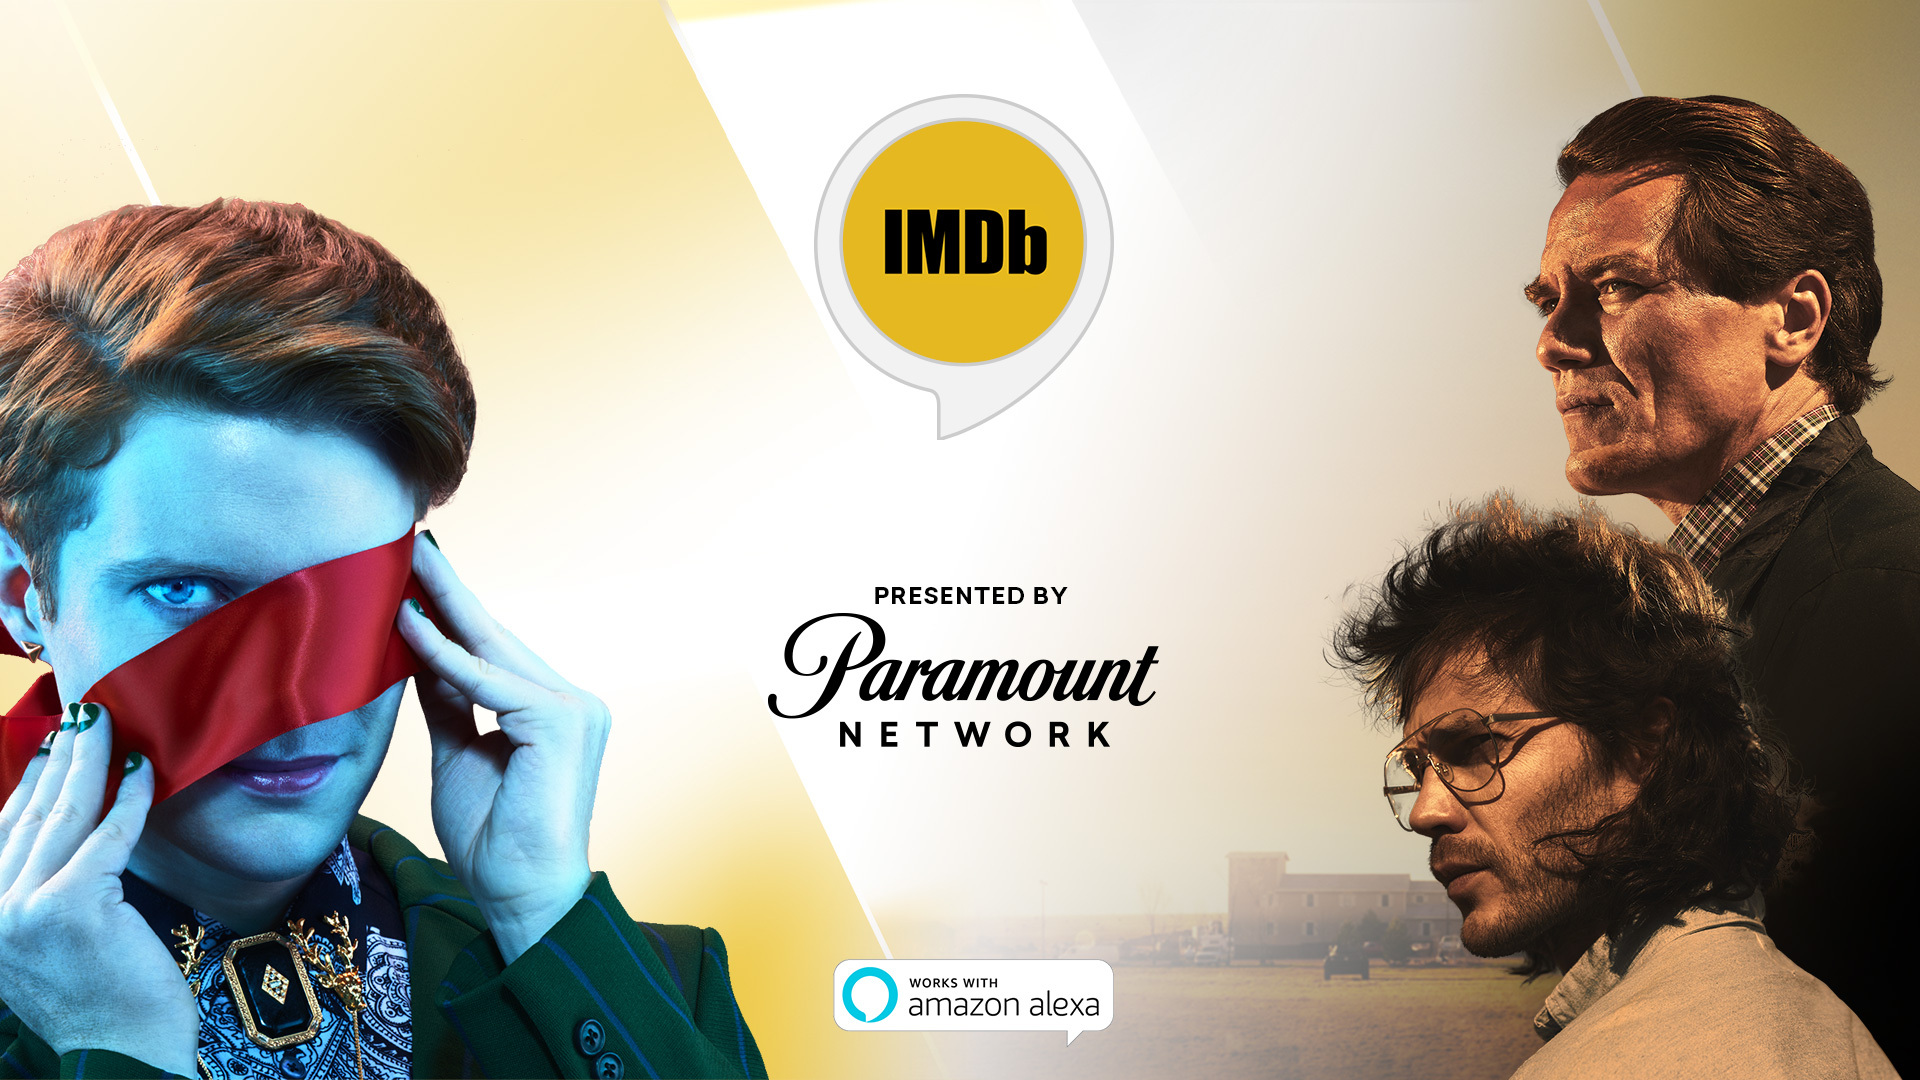 IMDb Launches Its First-Ever Skill for Amazon Alexa | Business Wire